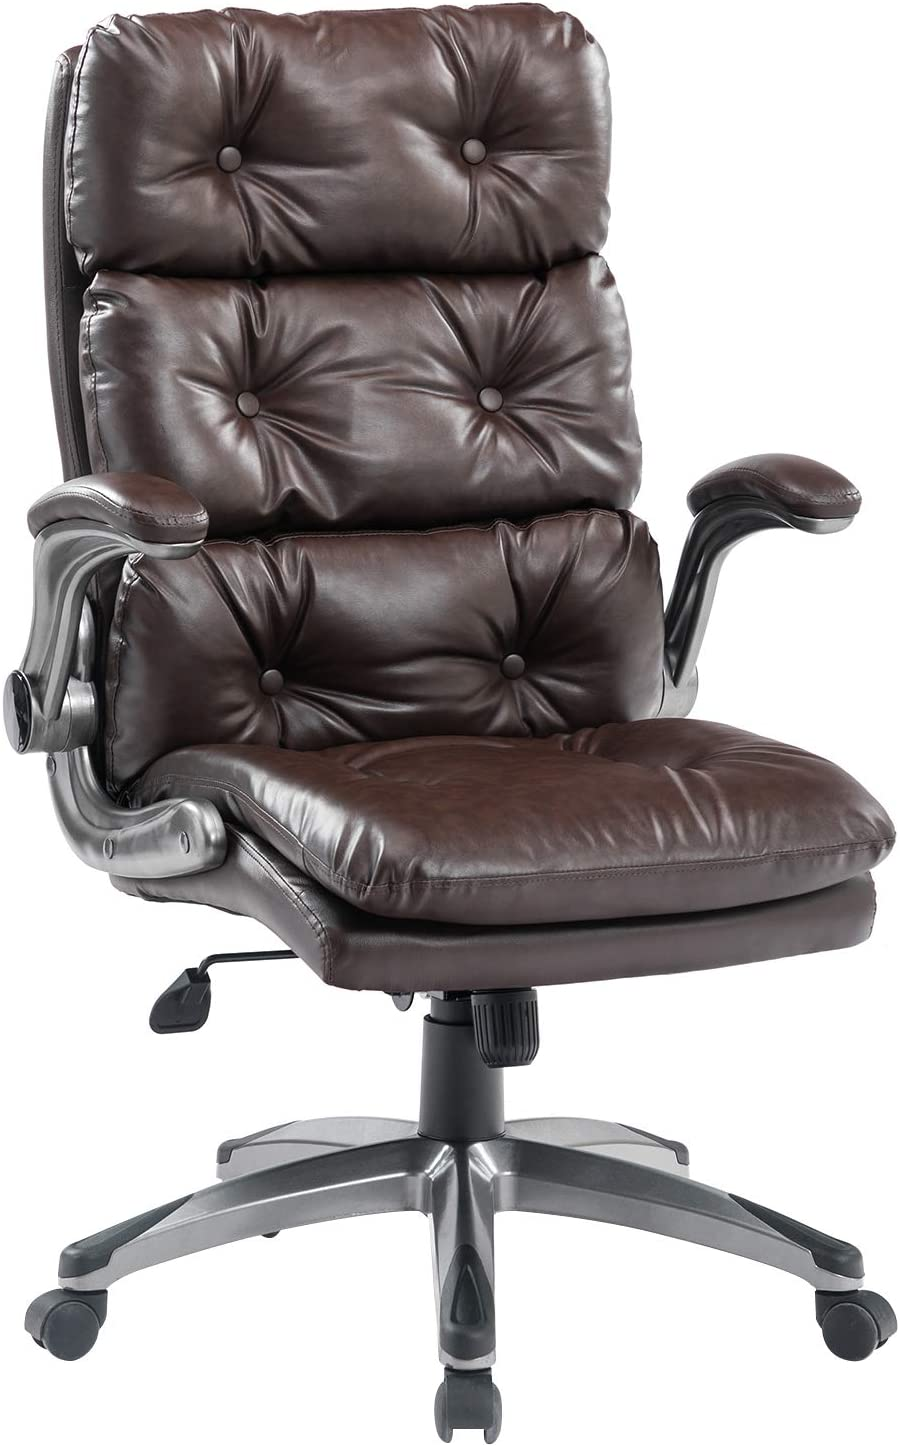 BOSMILLER Office Chair High Back Leather Executive Computer Desk Chair - Adjustable Tilt Angle and Flip-up Arms Swivel Chair Thick Padding for Comfort and Ergonomic Design for Lumbar Support, Brown